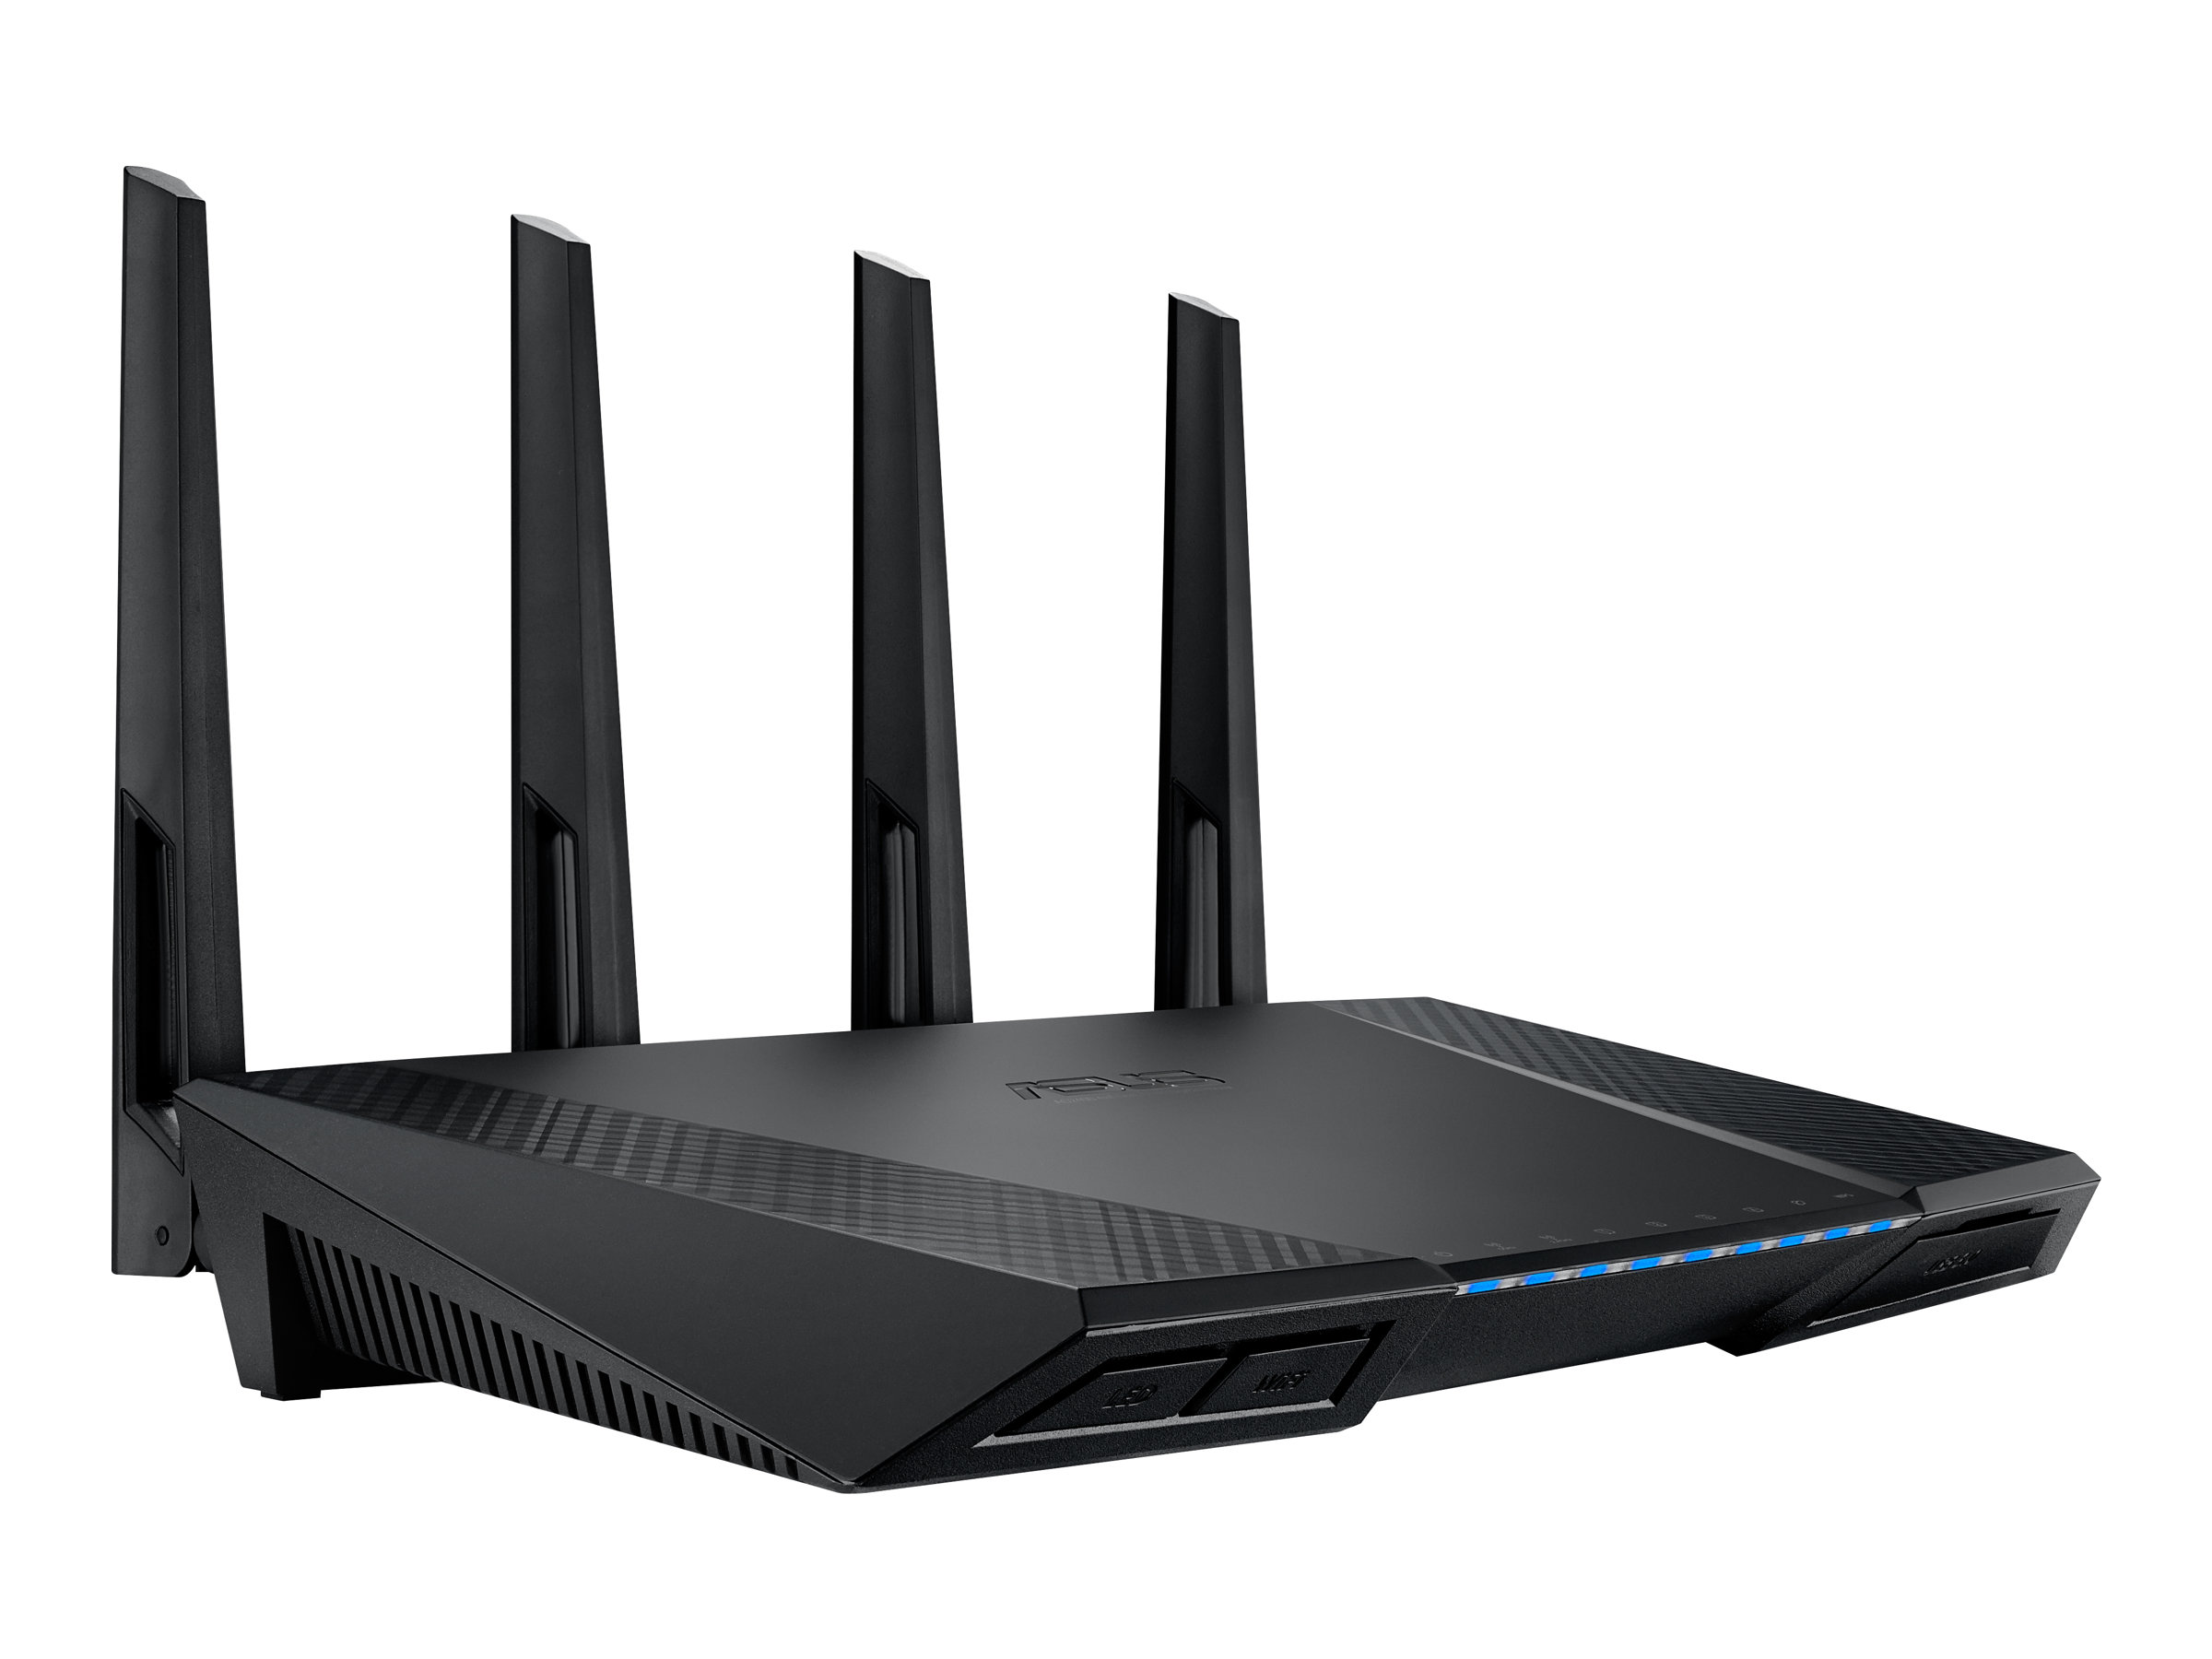 Image for Asus - Wireless Router - 802.11A/B/G/N/Ac - Desktop, Wall-Mountable from Circuit City